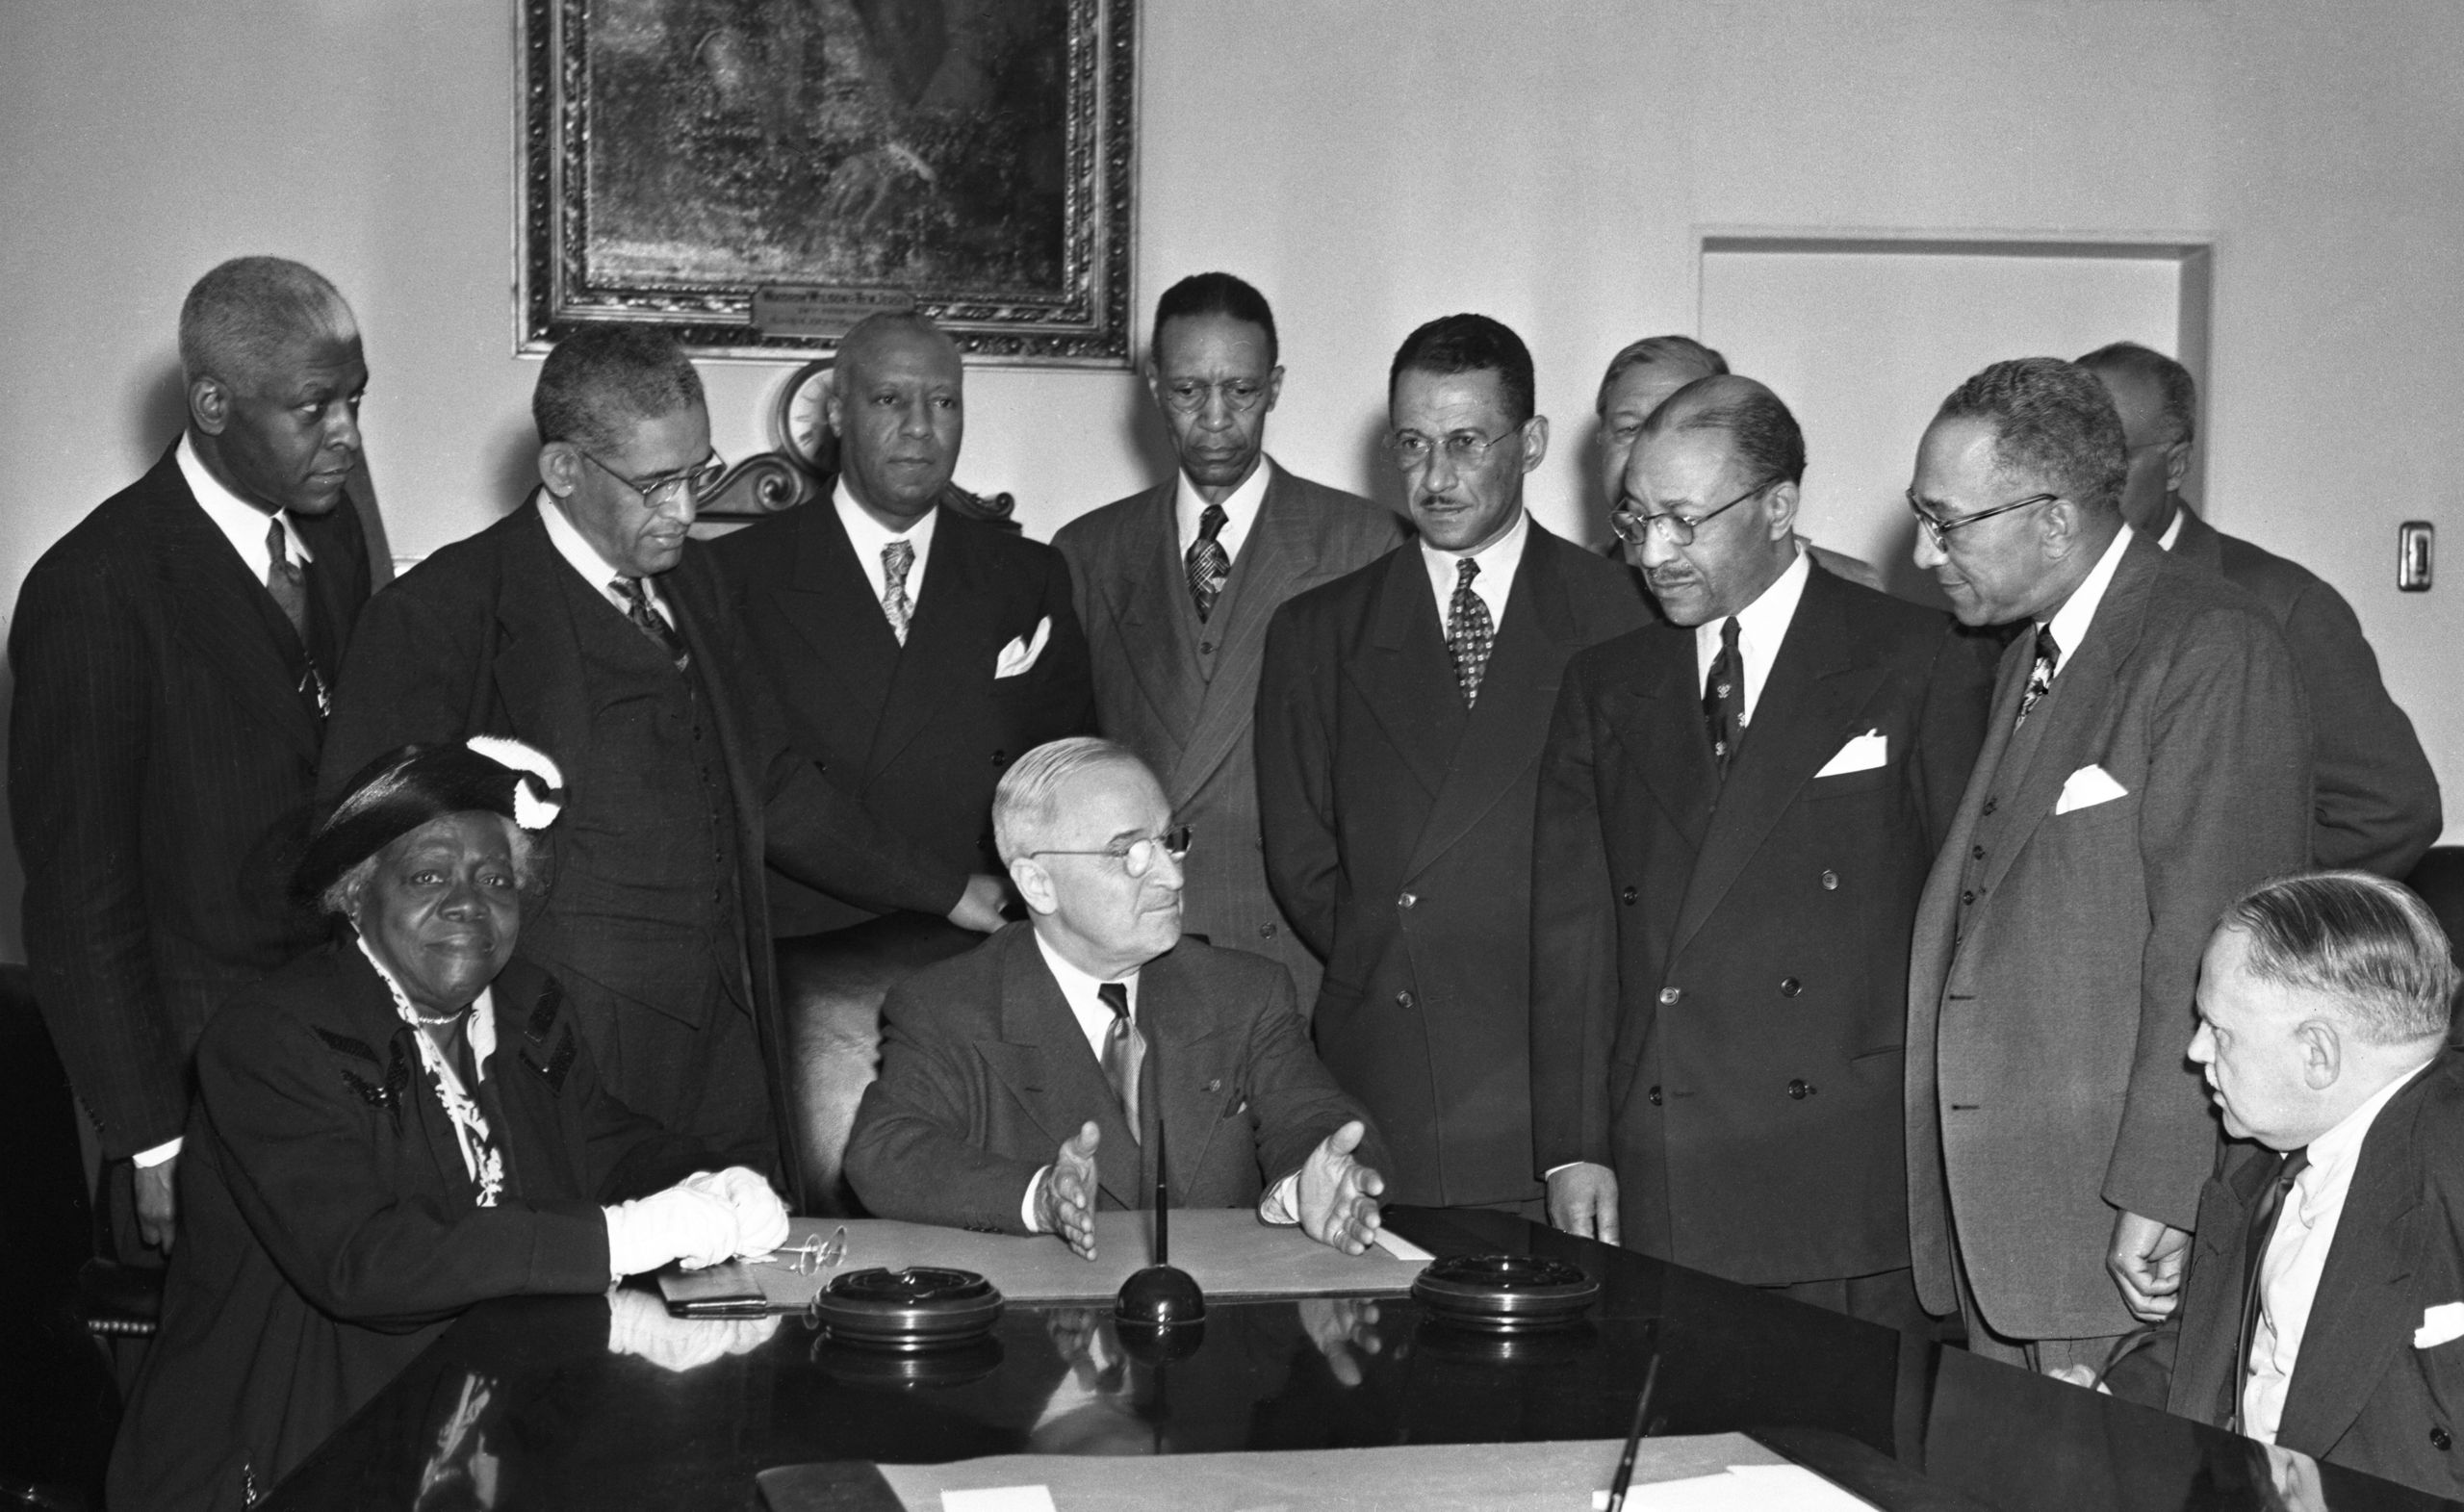 Civil rights leaders lobbied presidents, including Harry Truman, to increase Black representation in government jobs.